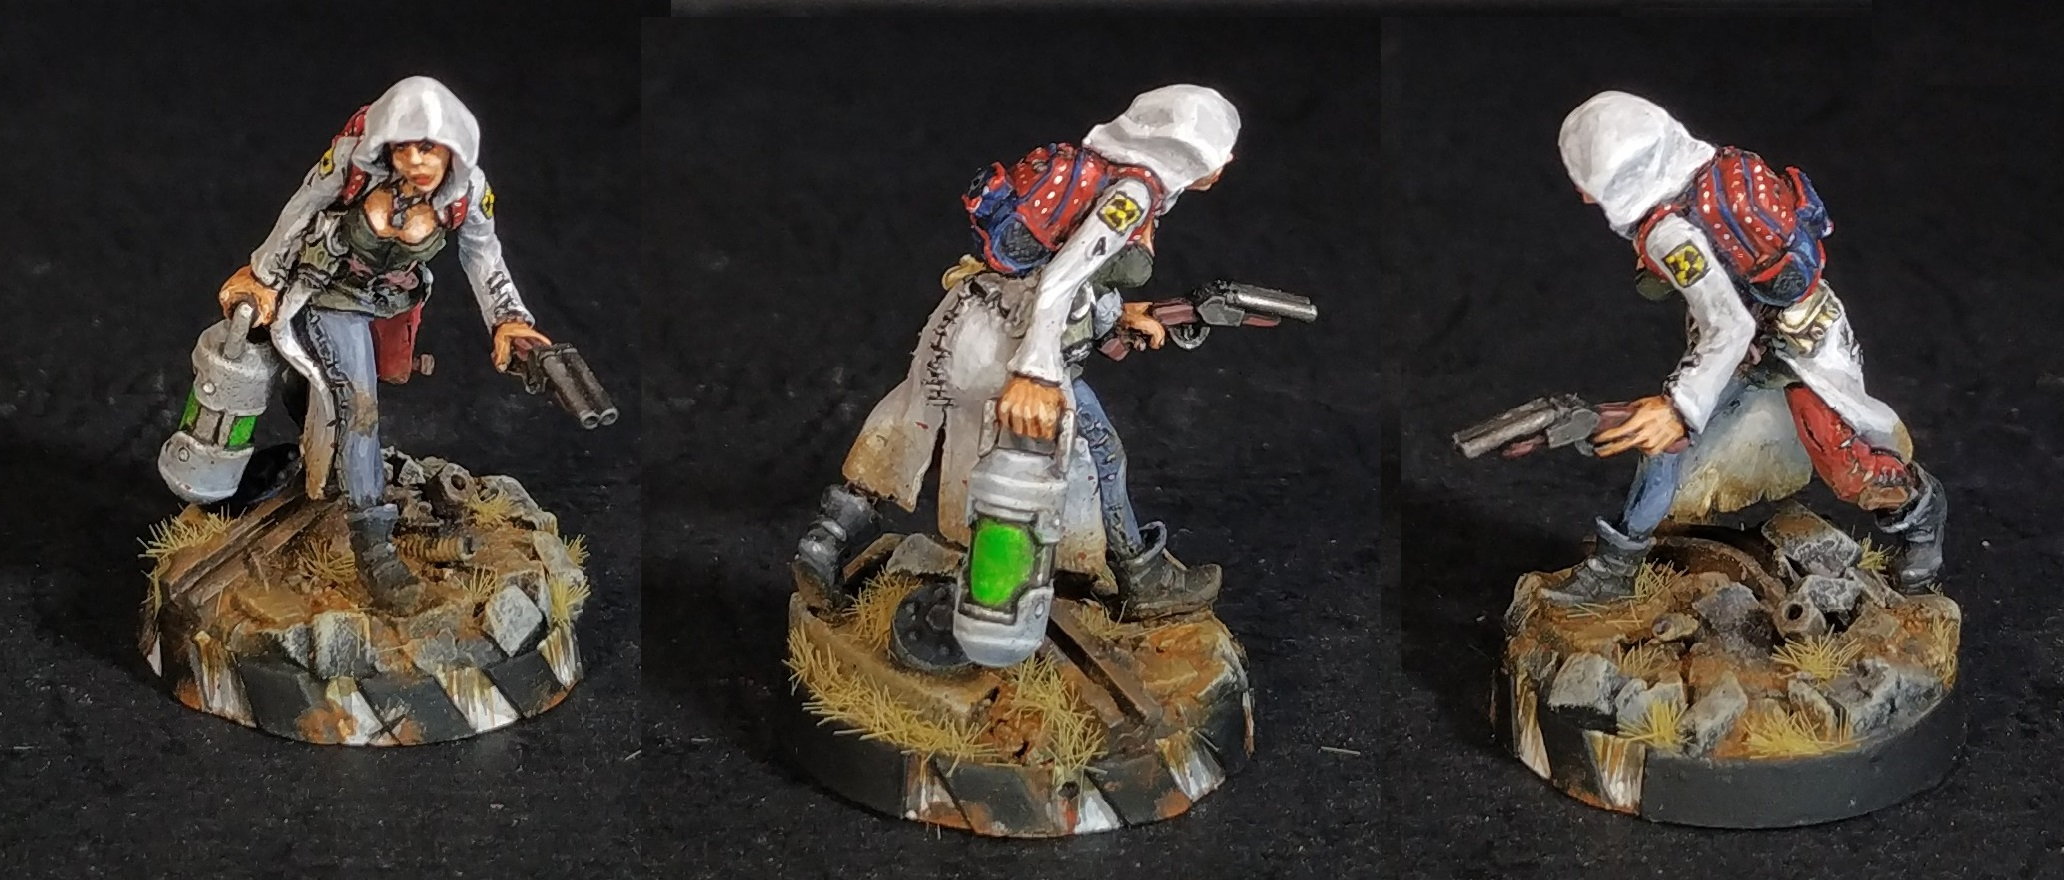 Looter with stolen test-tube for Gang of Wastelanders Afterglow Miniature Game.